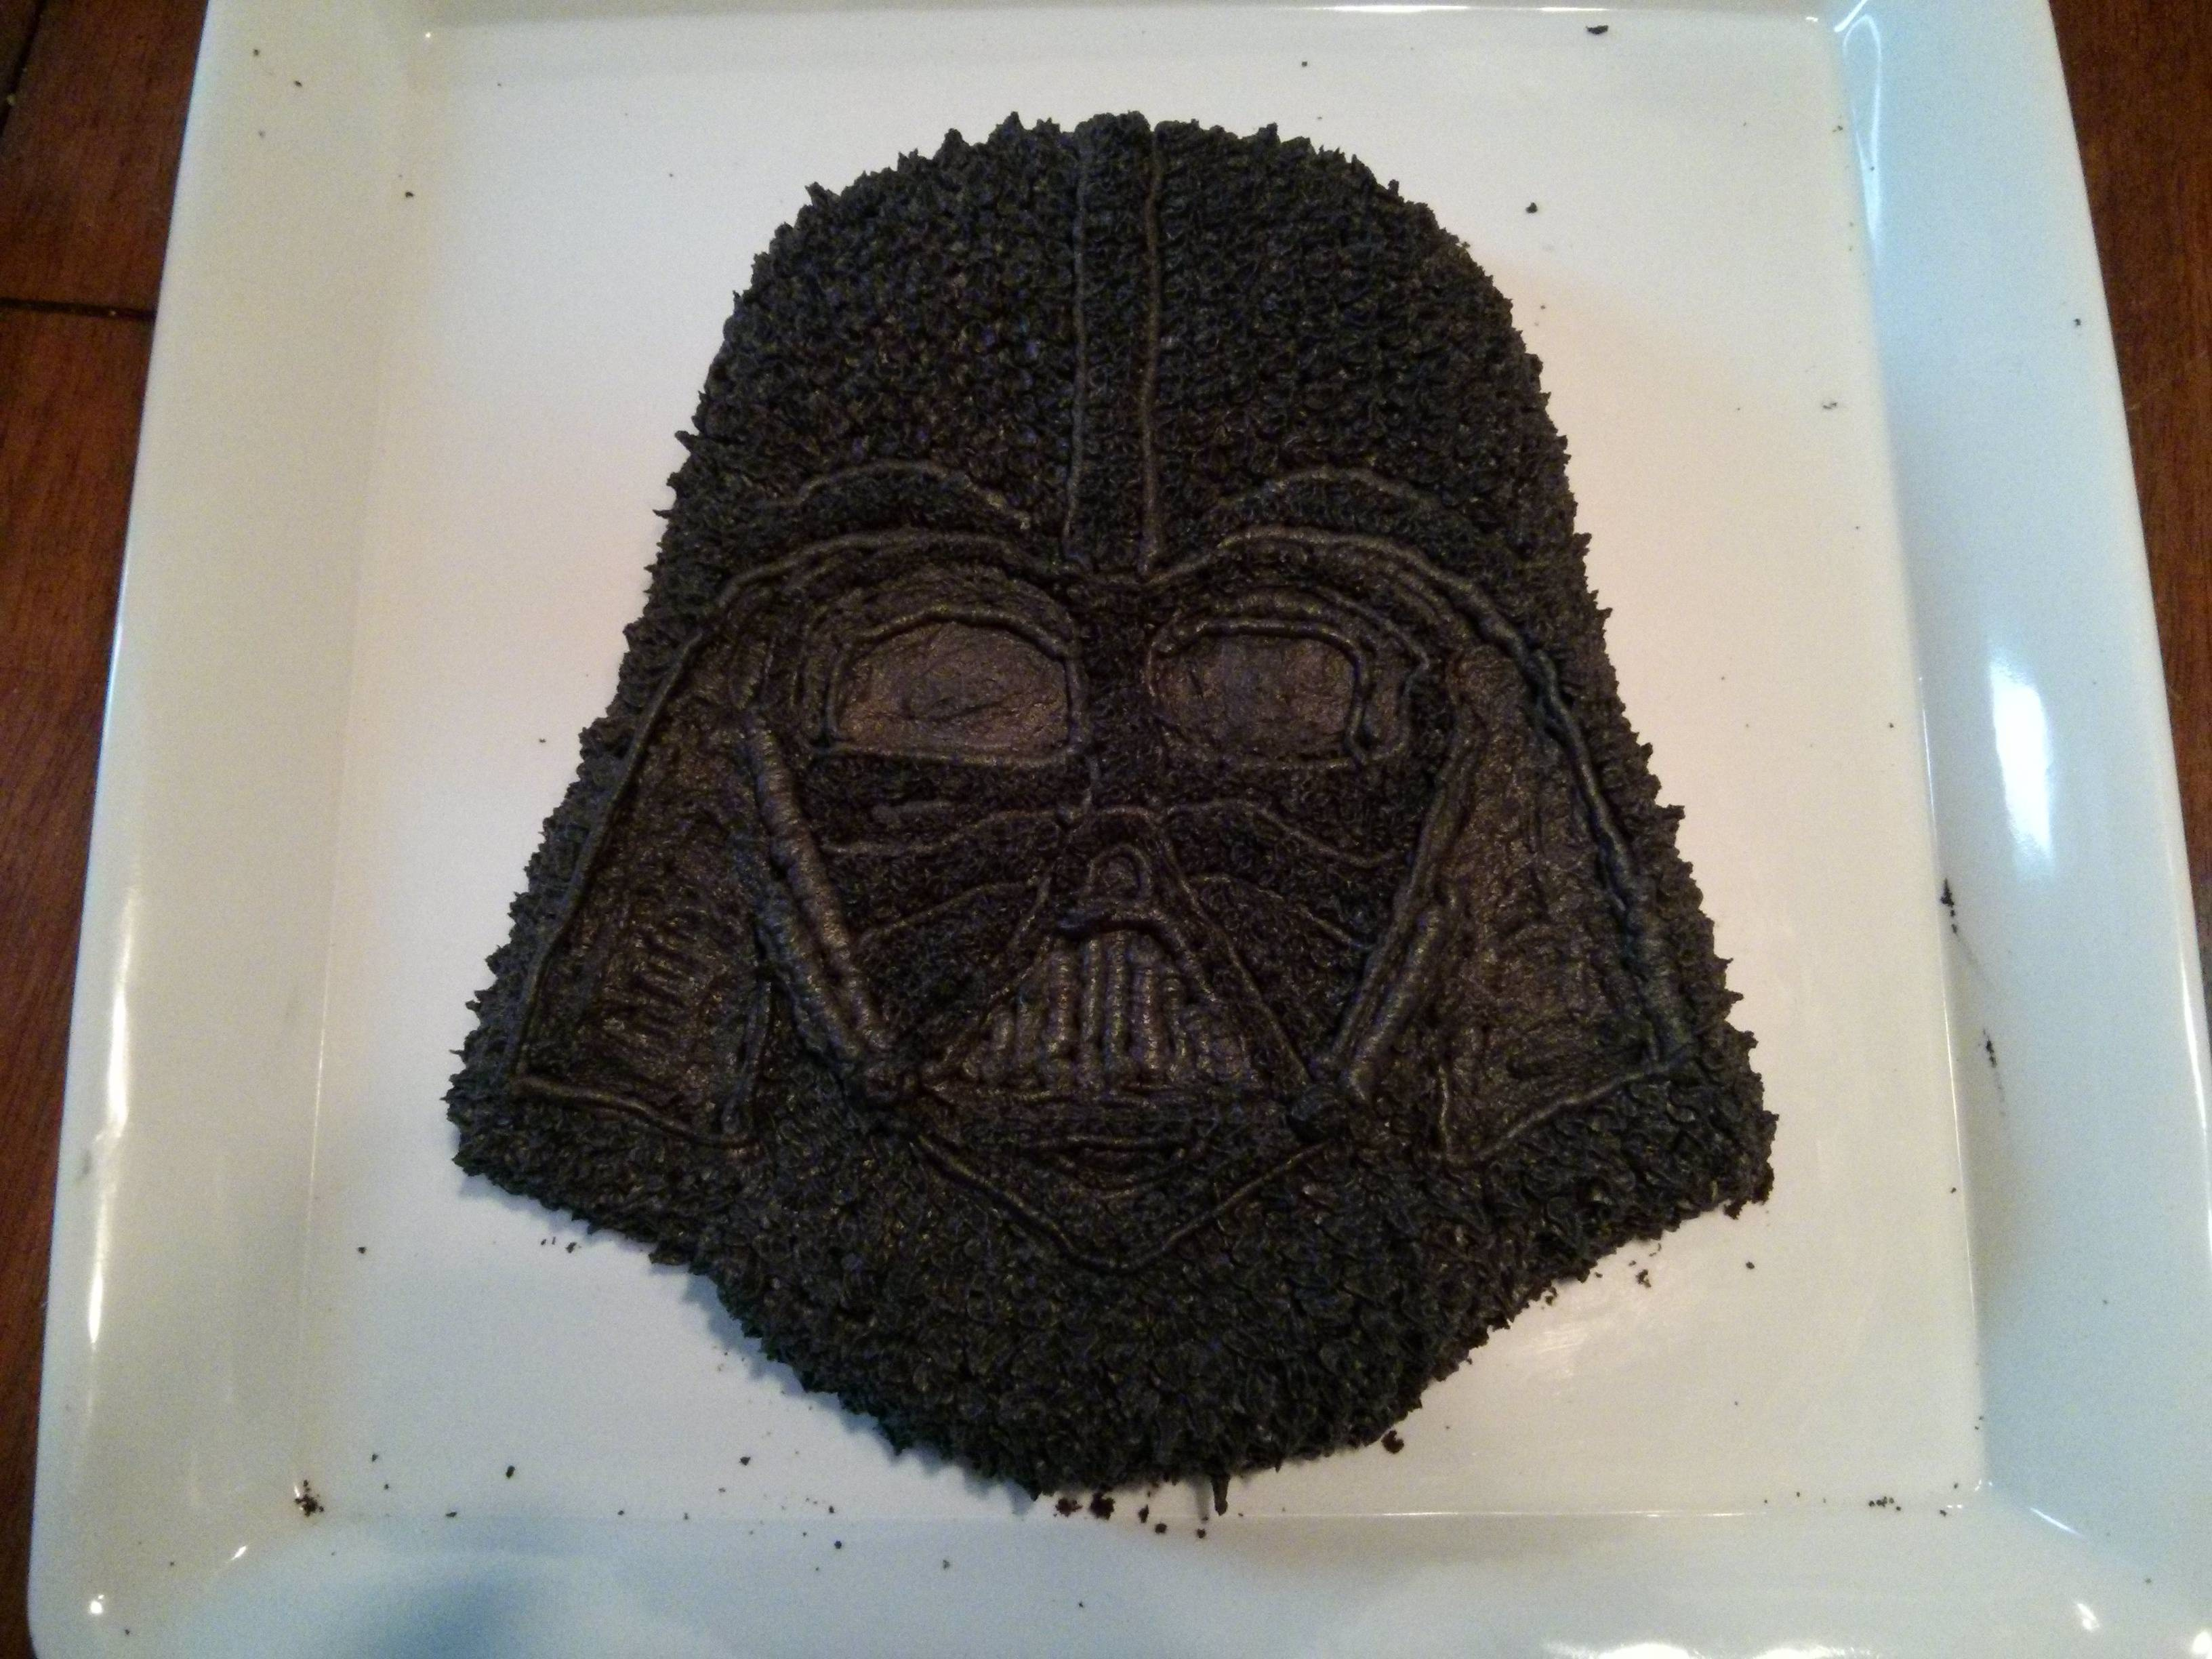 Darth Vader Kuchen Epic Homemade Darth Vader Cake Jpegy What The Internet Was